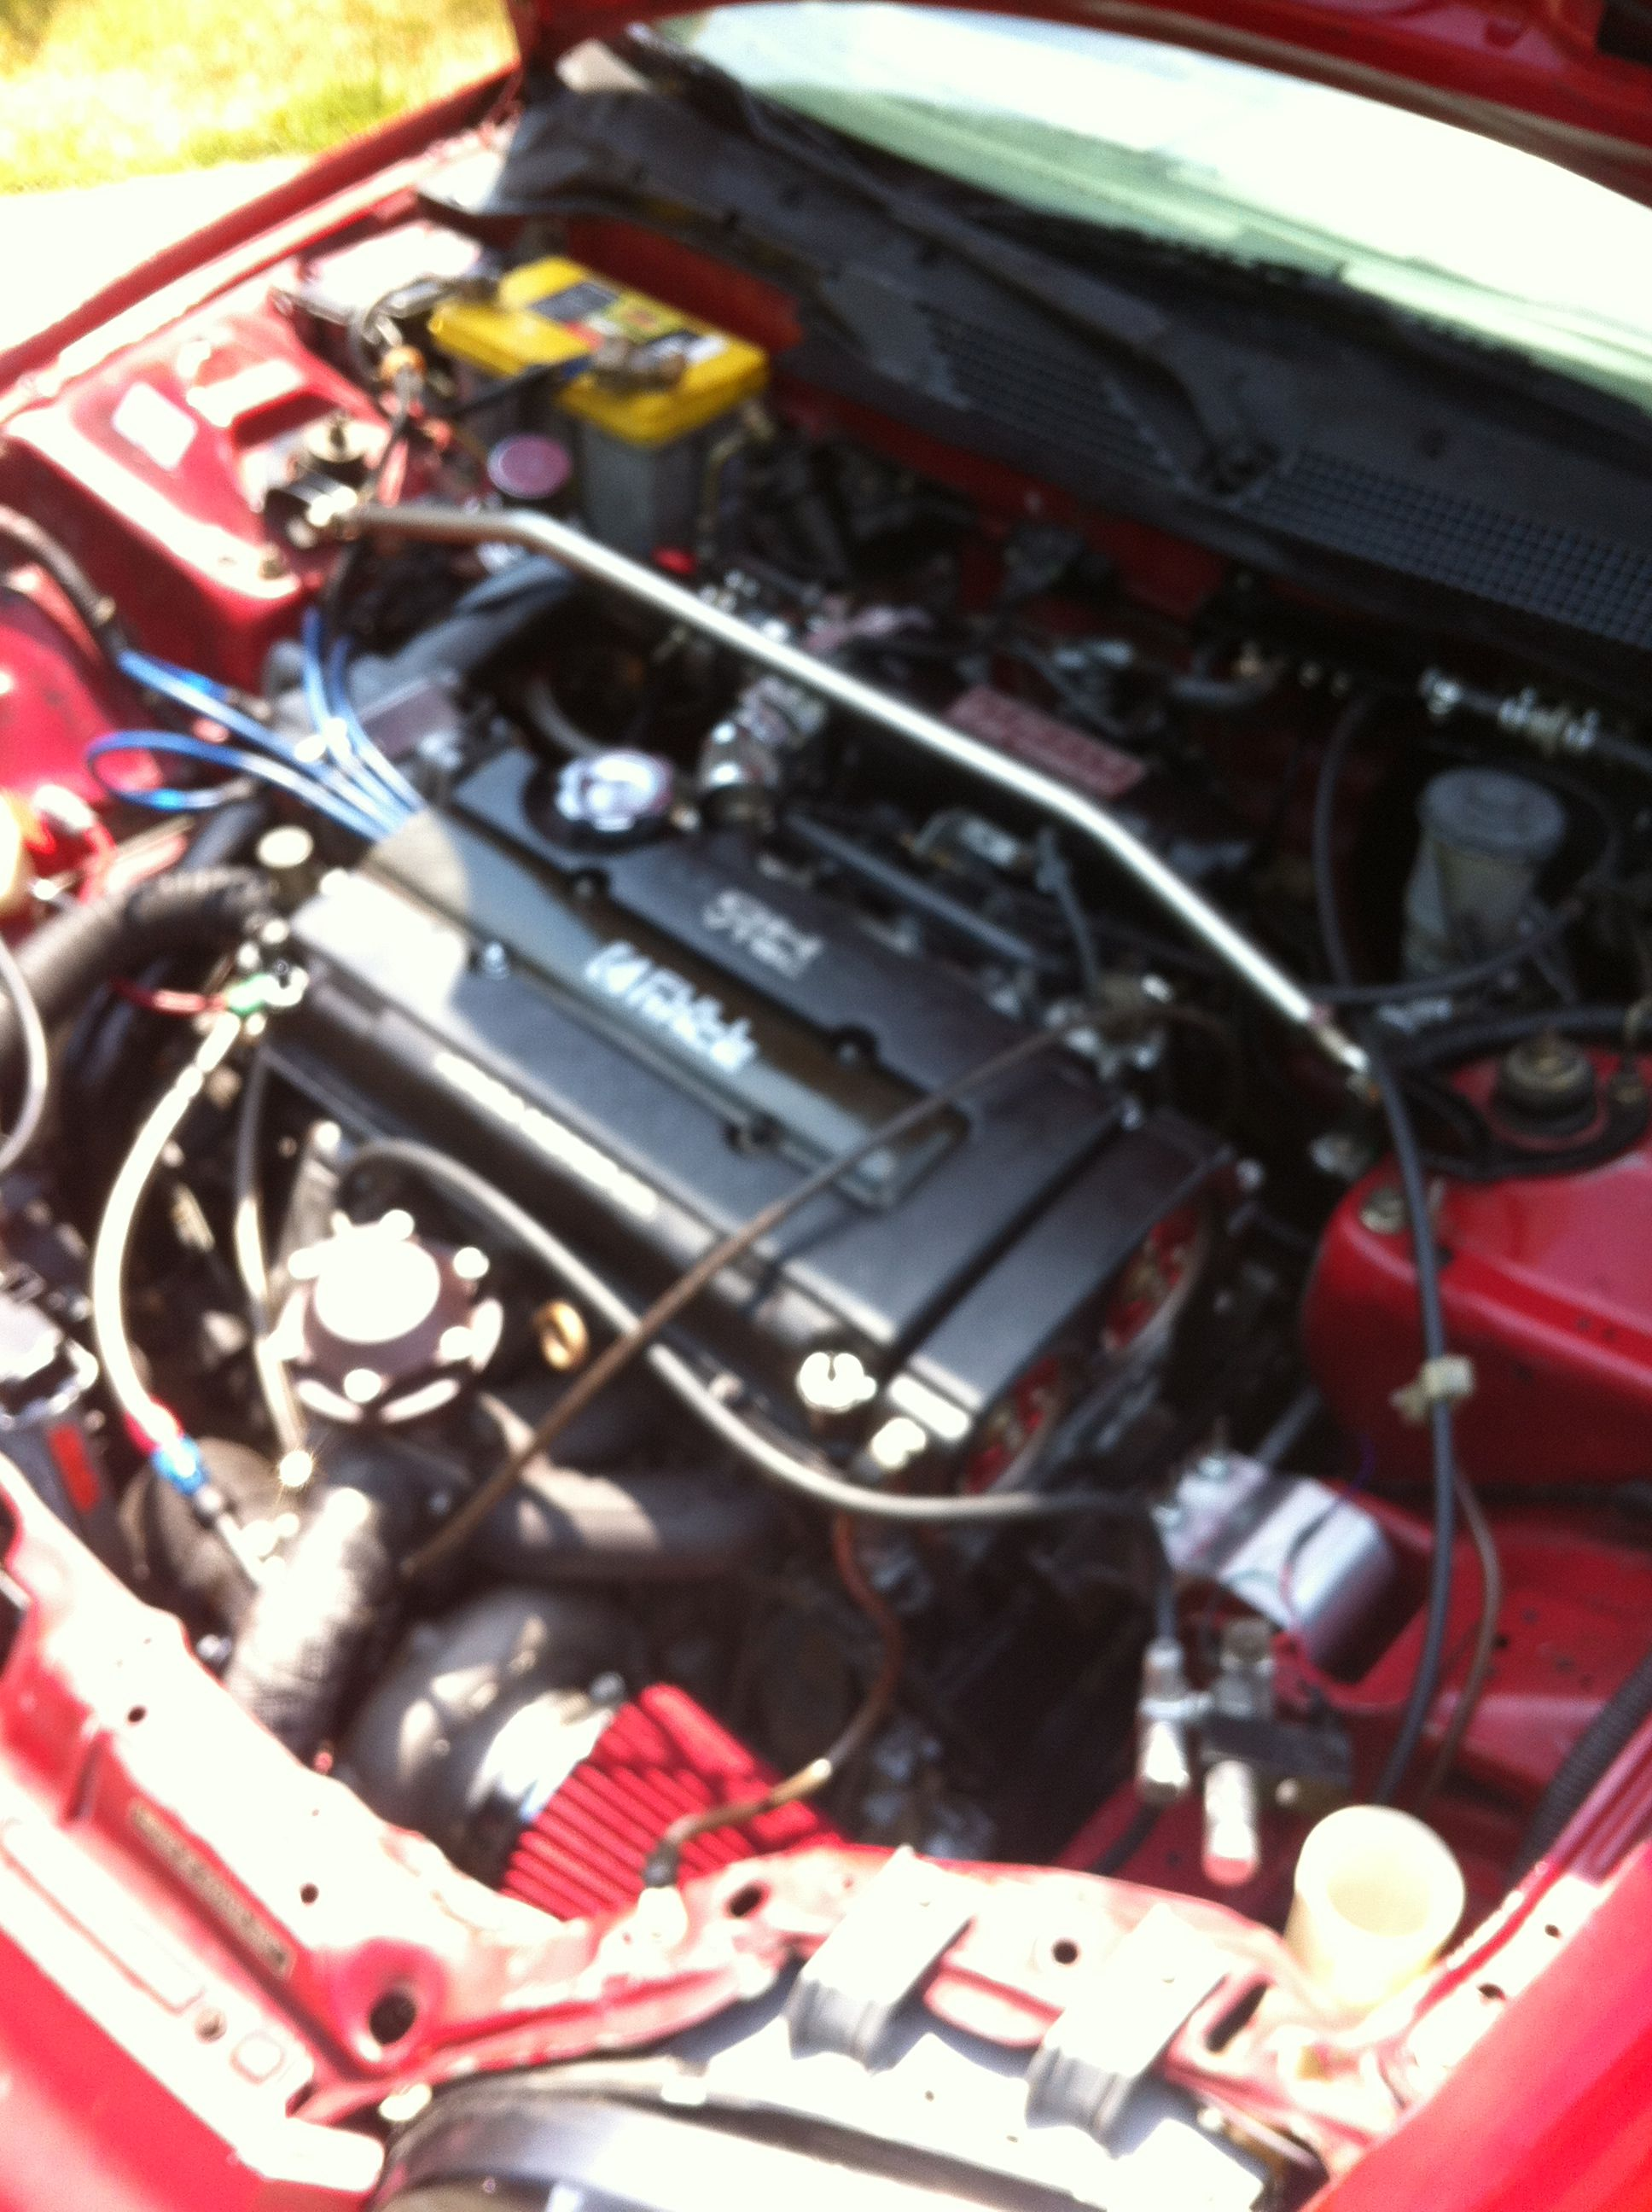 After Second Rebuild On My Sons Ls Vtec With A 70 Mm Turbo 12 Lbs Of Boost Soooooo Fast